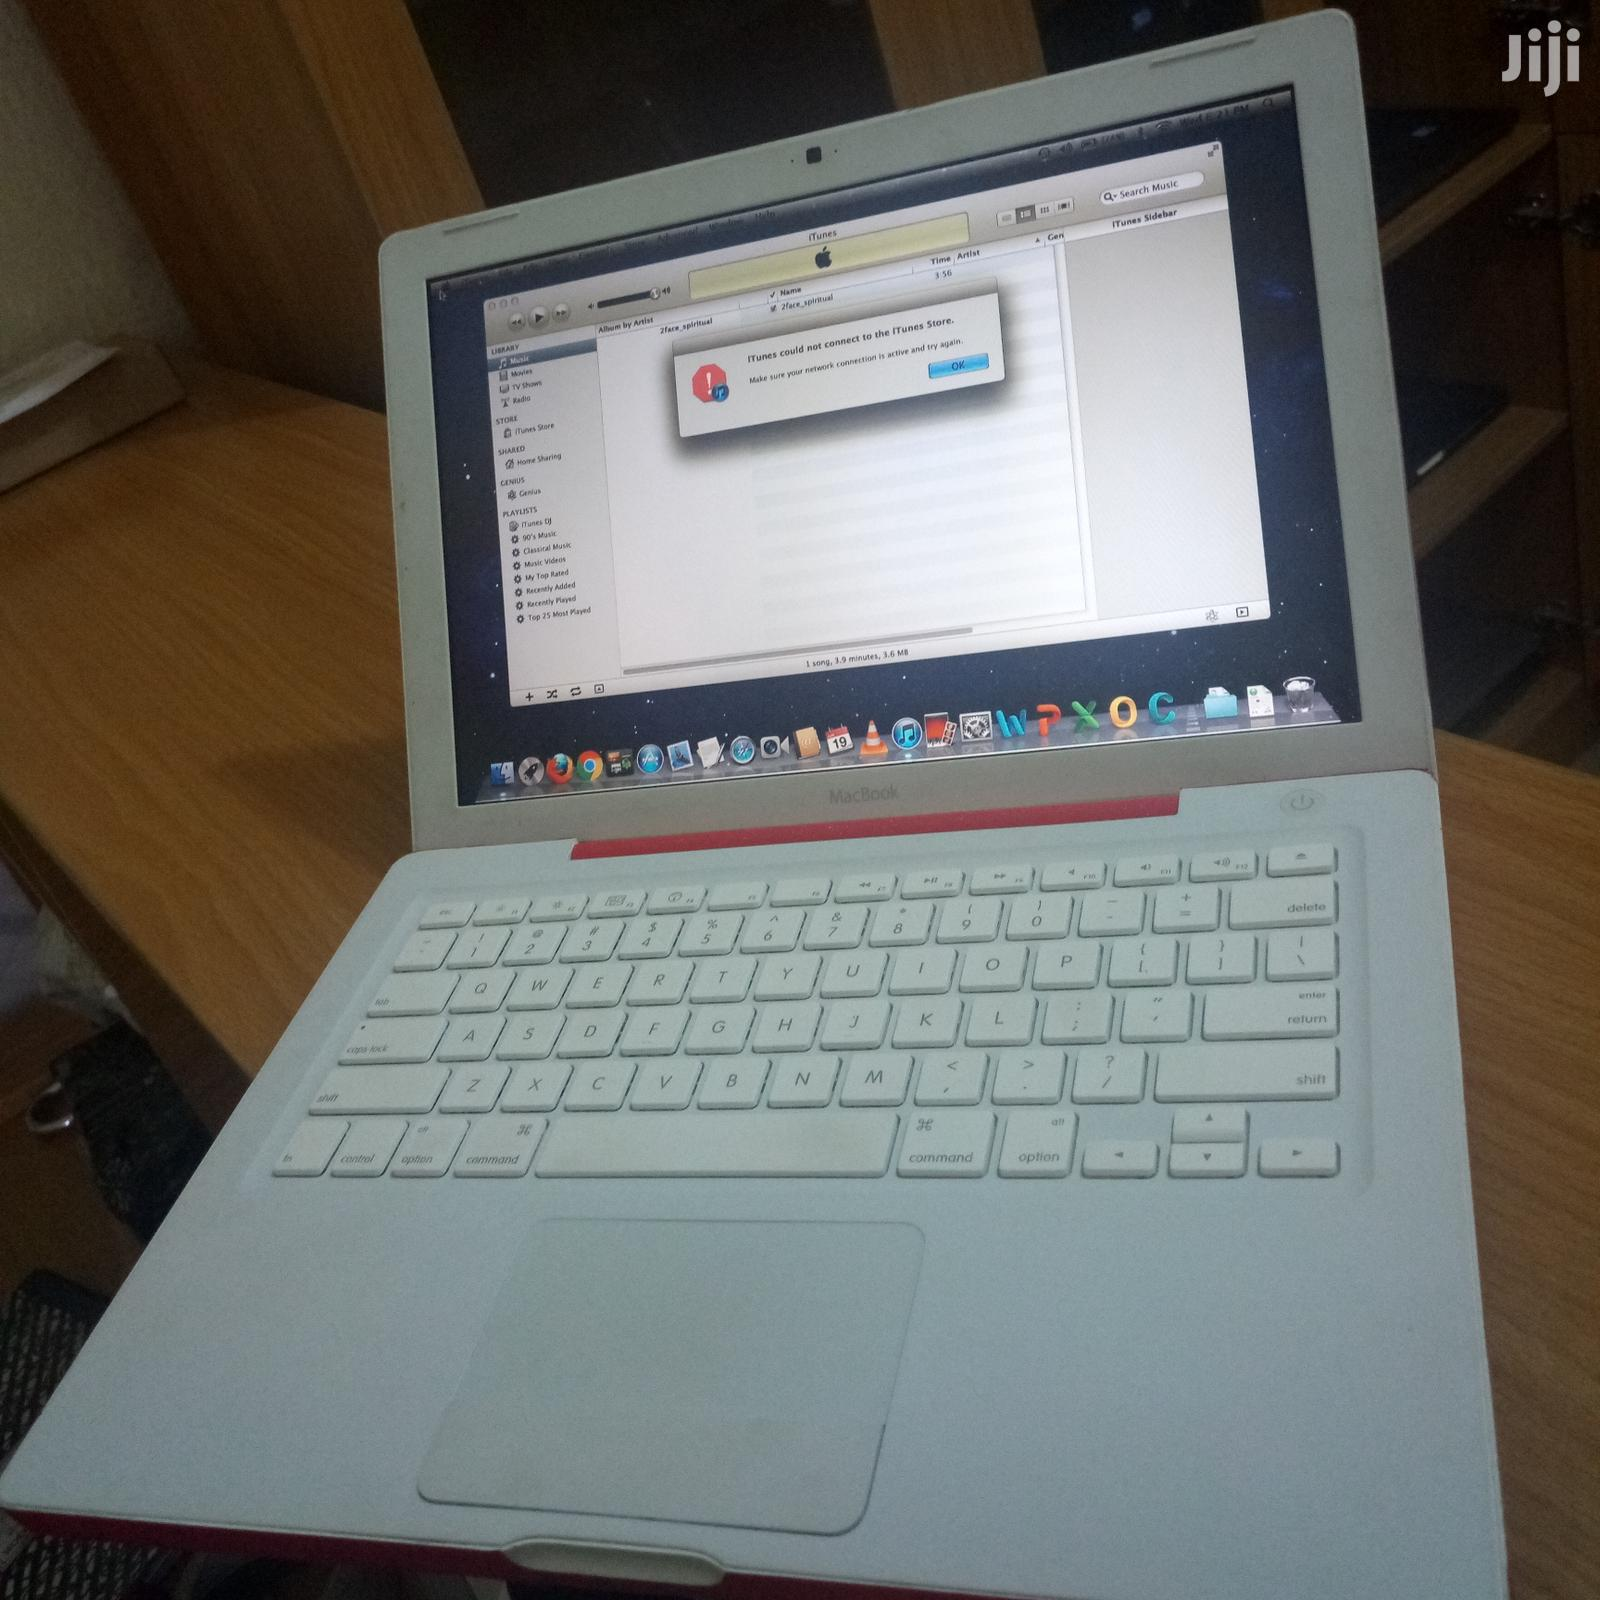 Laptop Apple MacBook 4GB Intel Core 2 Duo HDD 500GB   Laptops & Computers for sale in Central Business Dis, Abuja (FCT) State, Nigeria